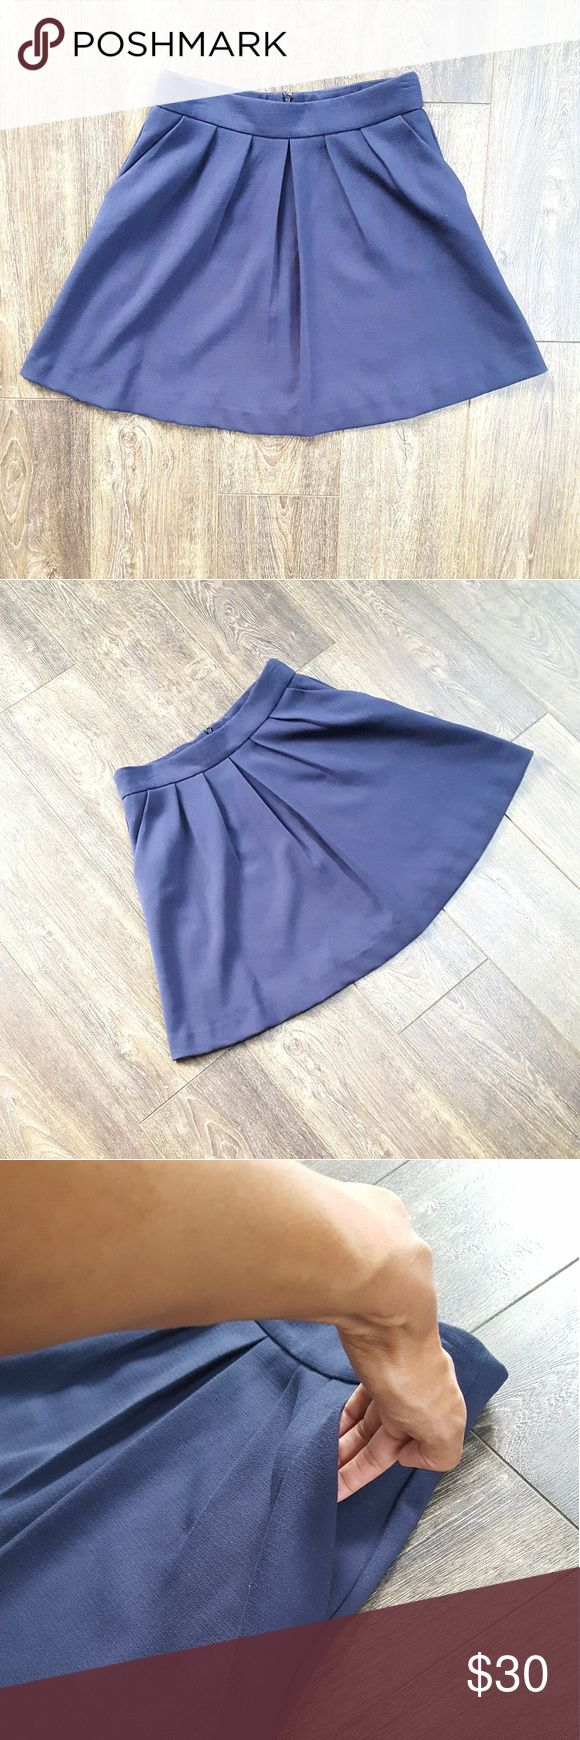 Mng by Mango Navy Skirt - Size 10 Mng by Mango Navy Skirt. Pleated folds on the front  2 front side pockets.  Hidden Zipper (back).  Excellent Pre loved condition. Mango Skirts